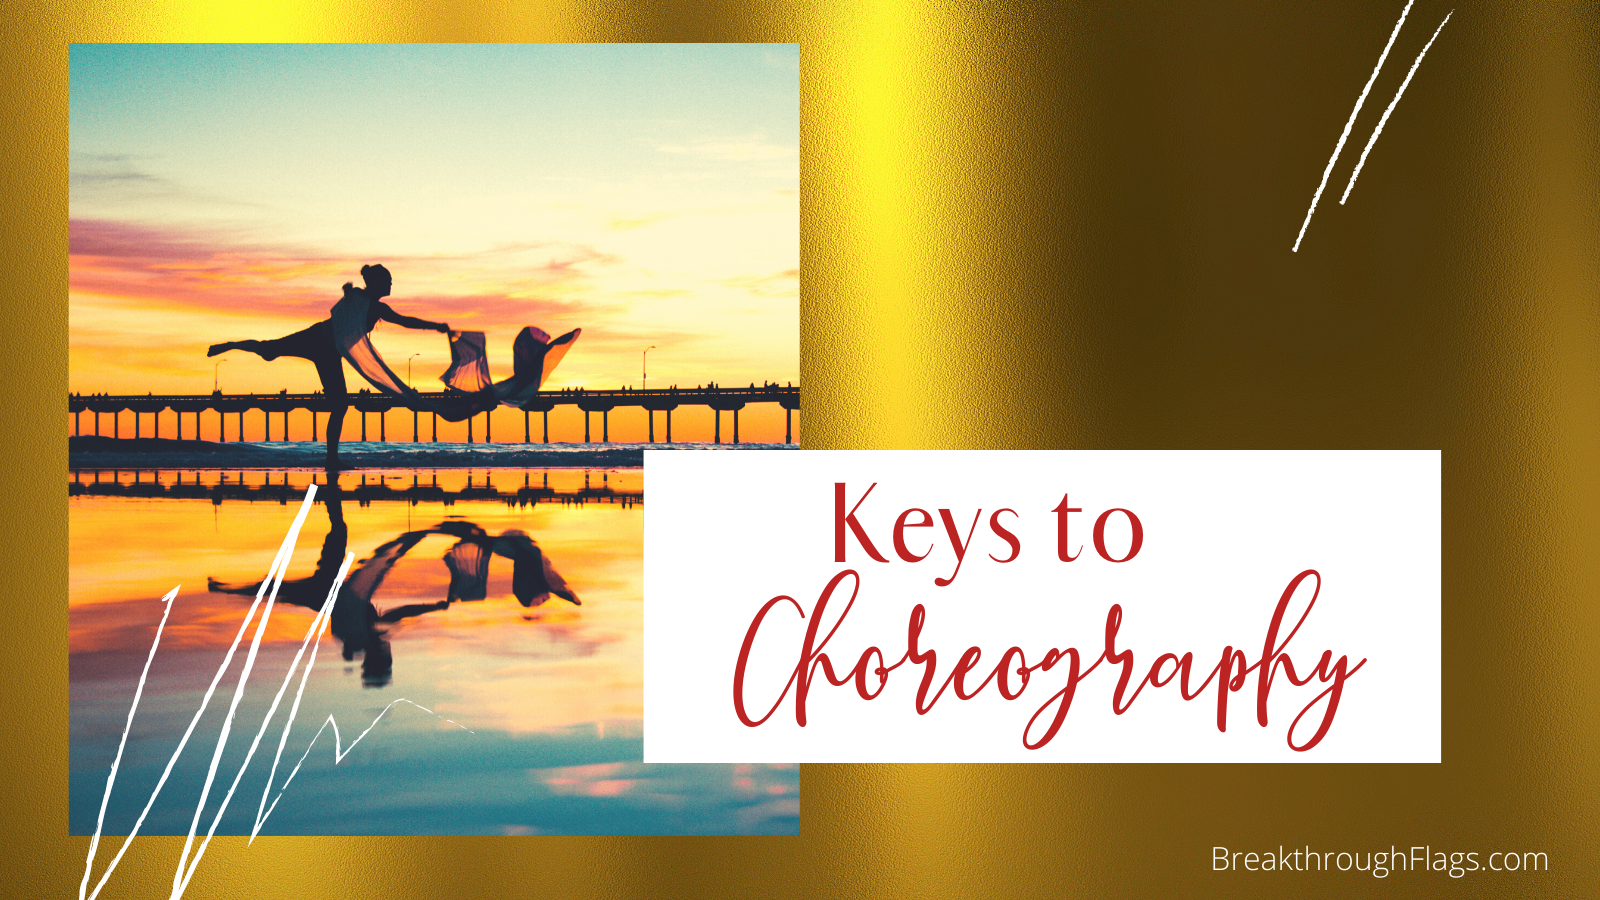 Keys to Choreography